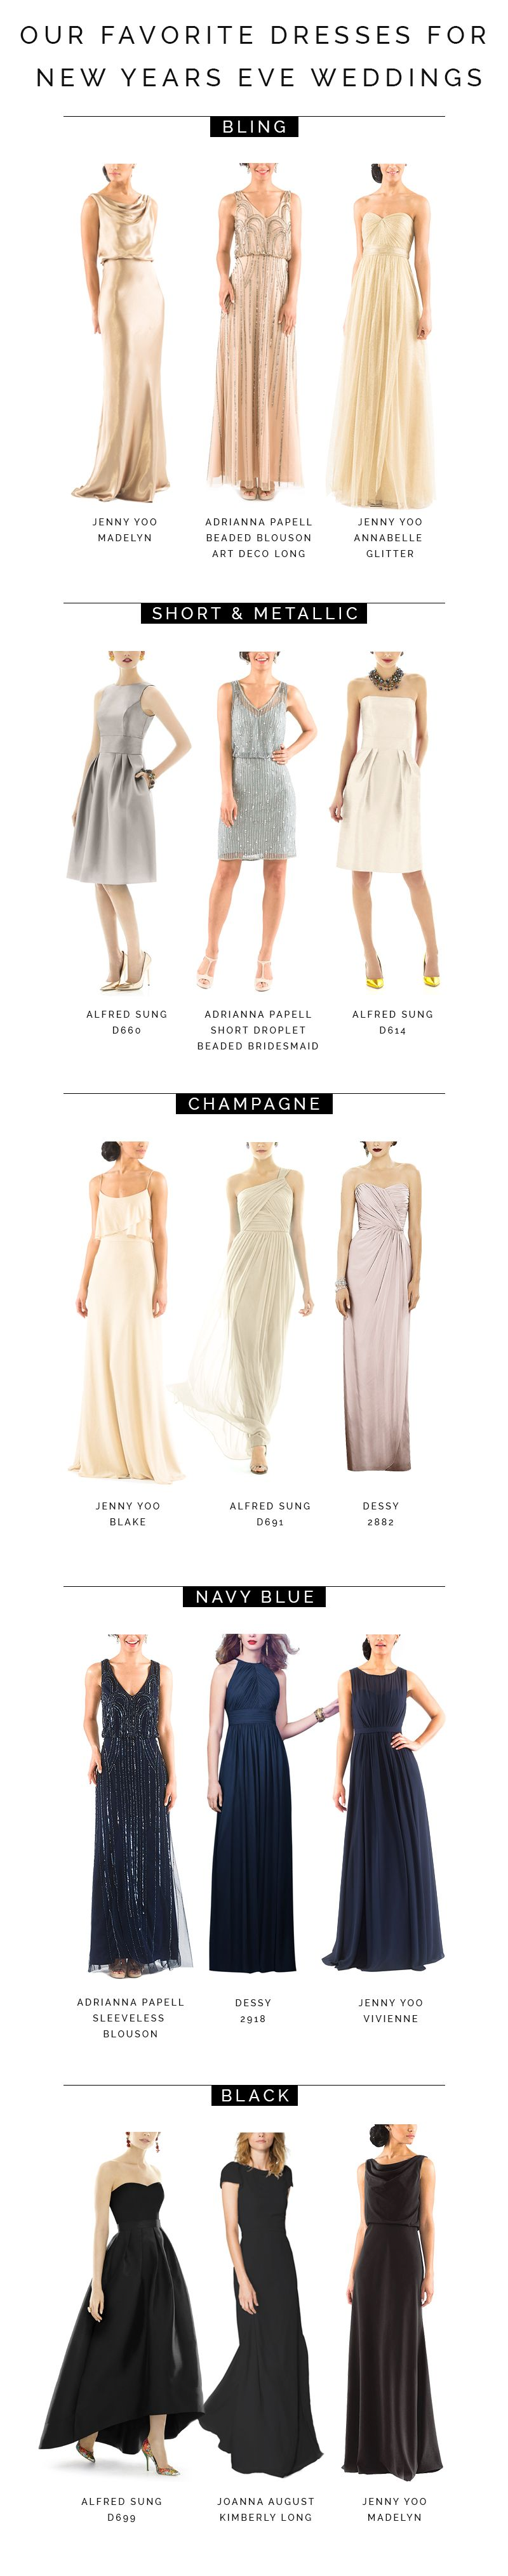 0cfa8843b2 The Best Bridesmaid Dresses for New Years Eve Weddings | Adrianna ...